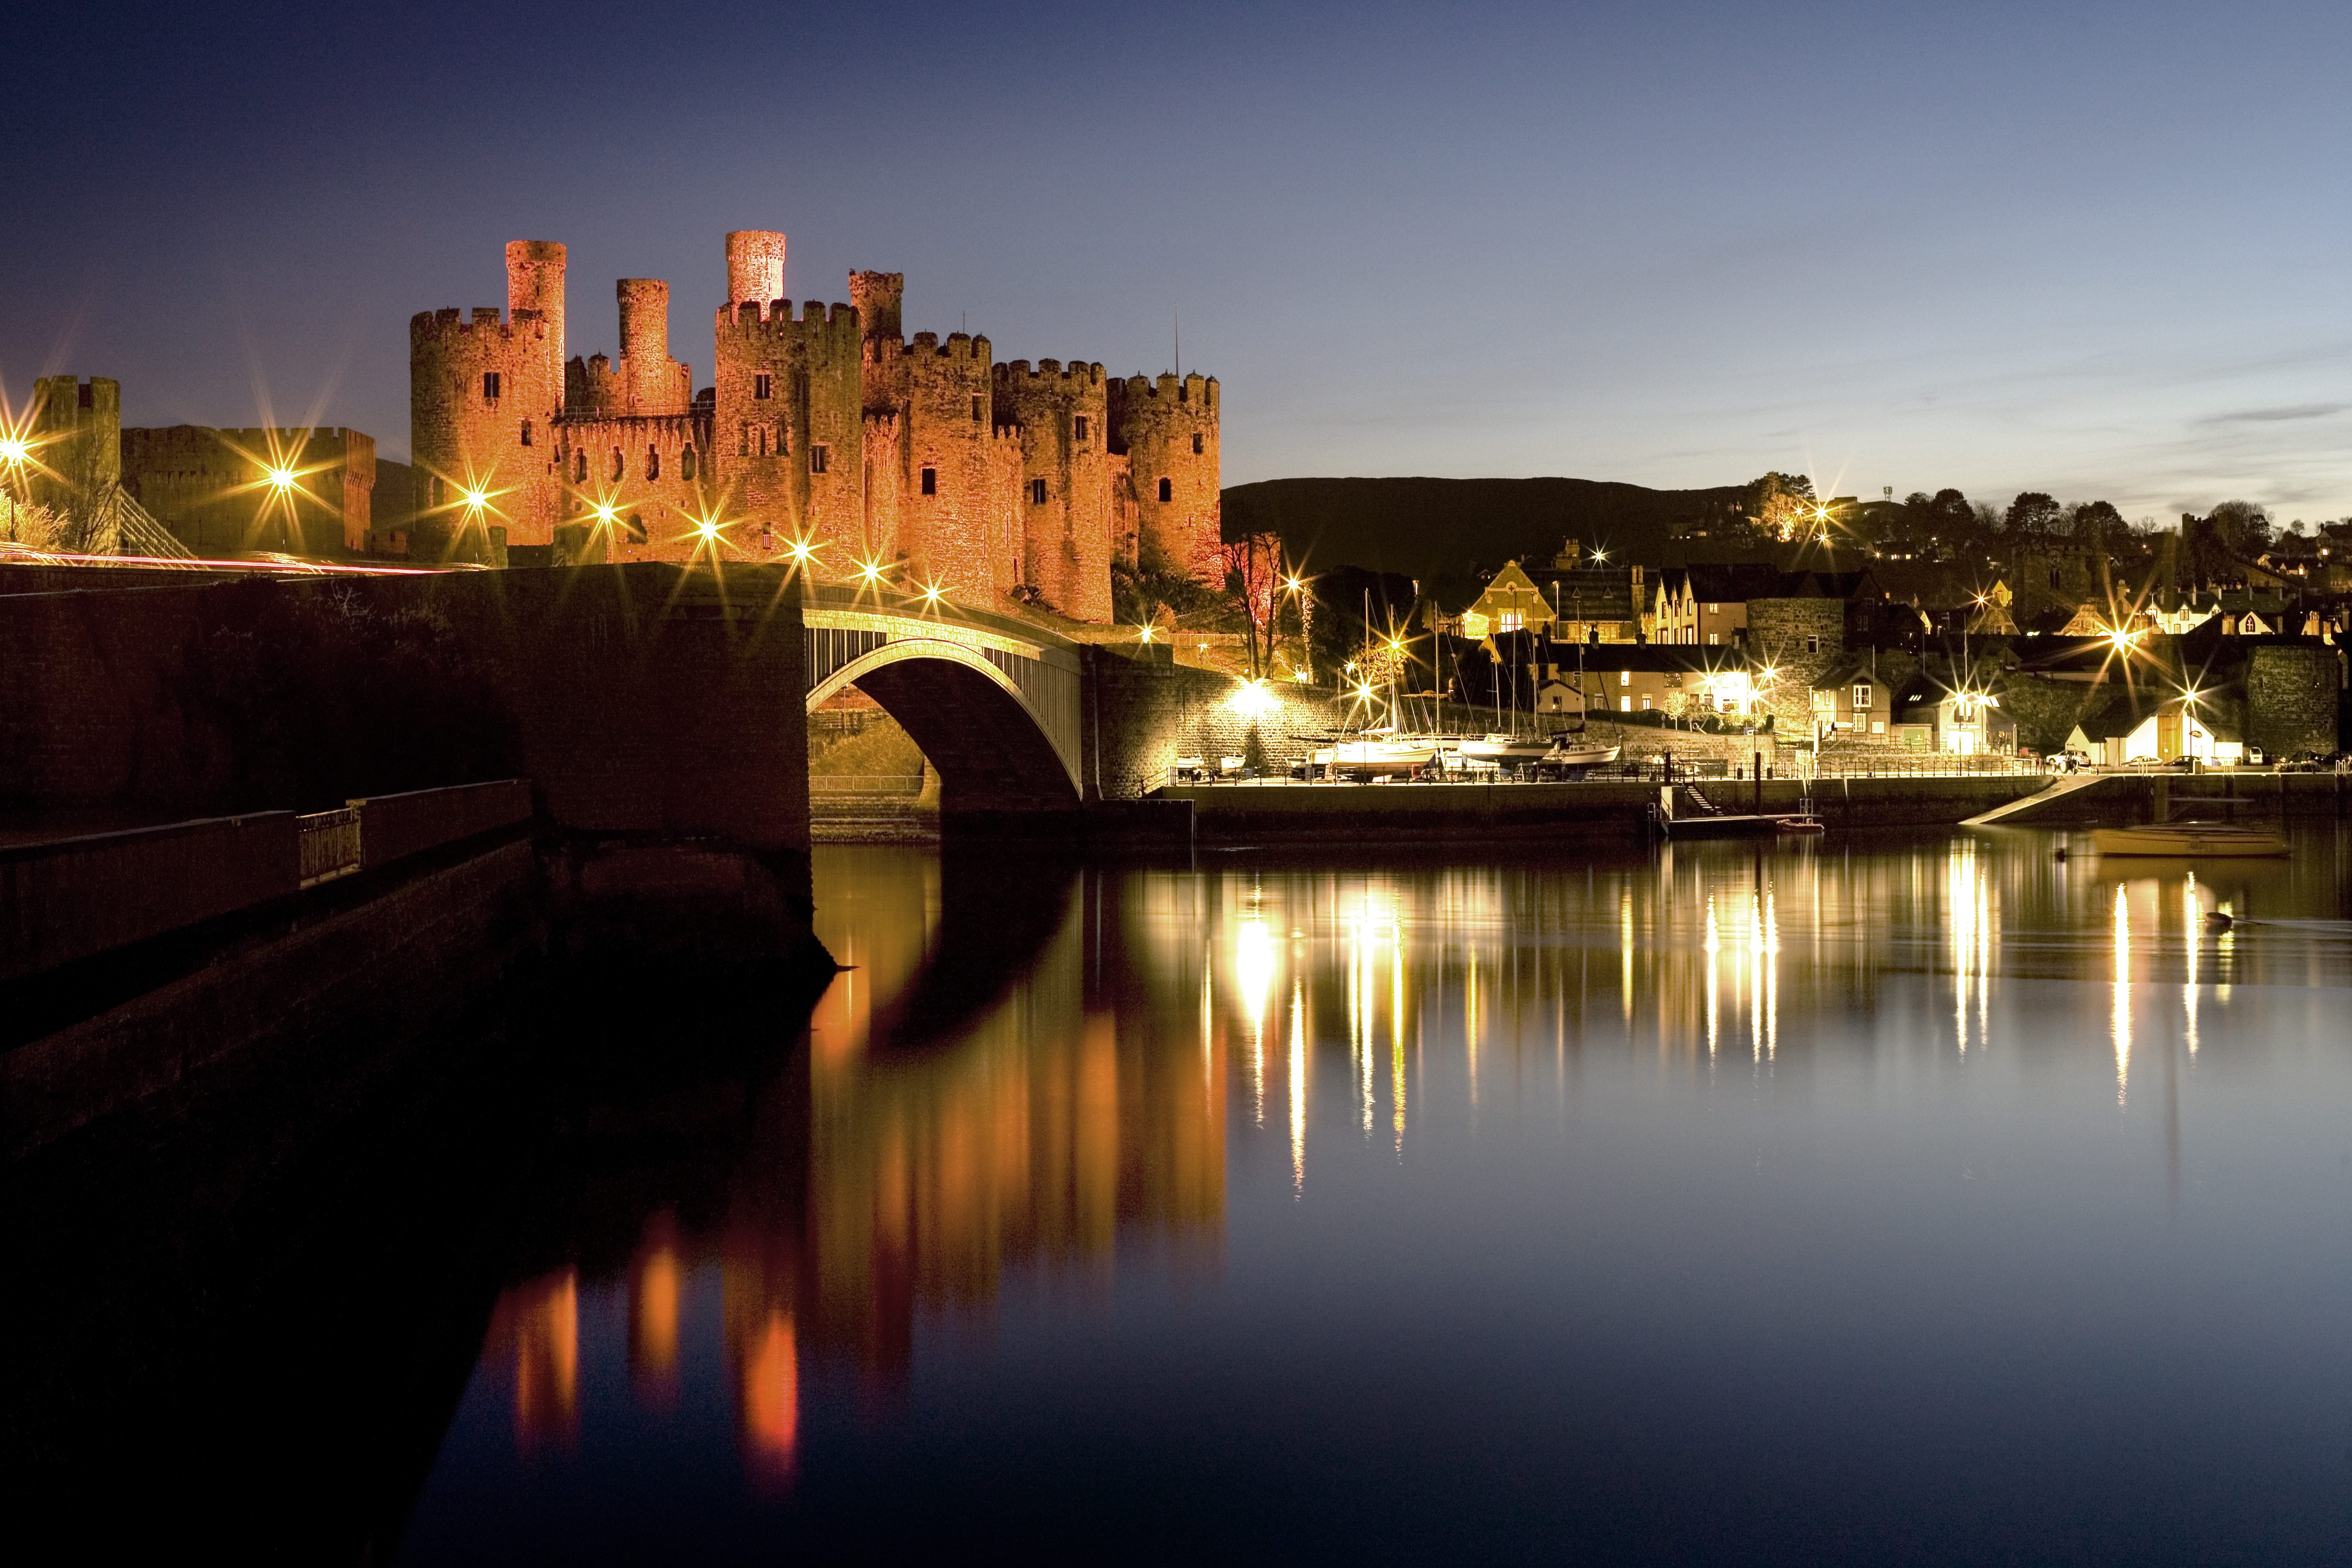 The View of the monumental Conwy Castle over the river Conwy at night, Wales, UK.